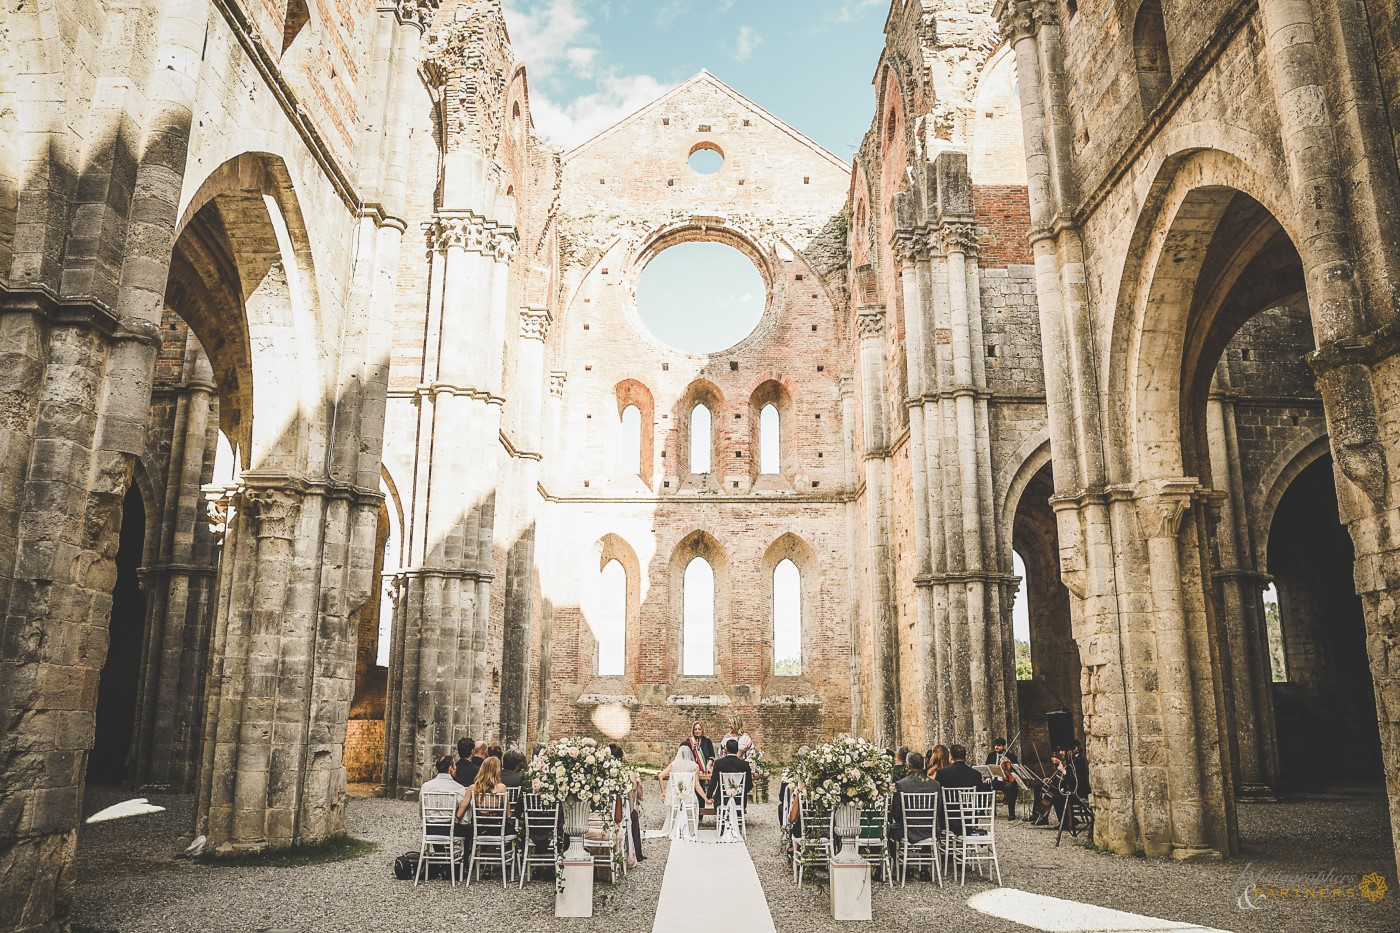 A nice overview of the San Galgano Abbey.